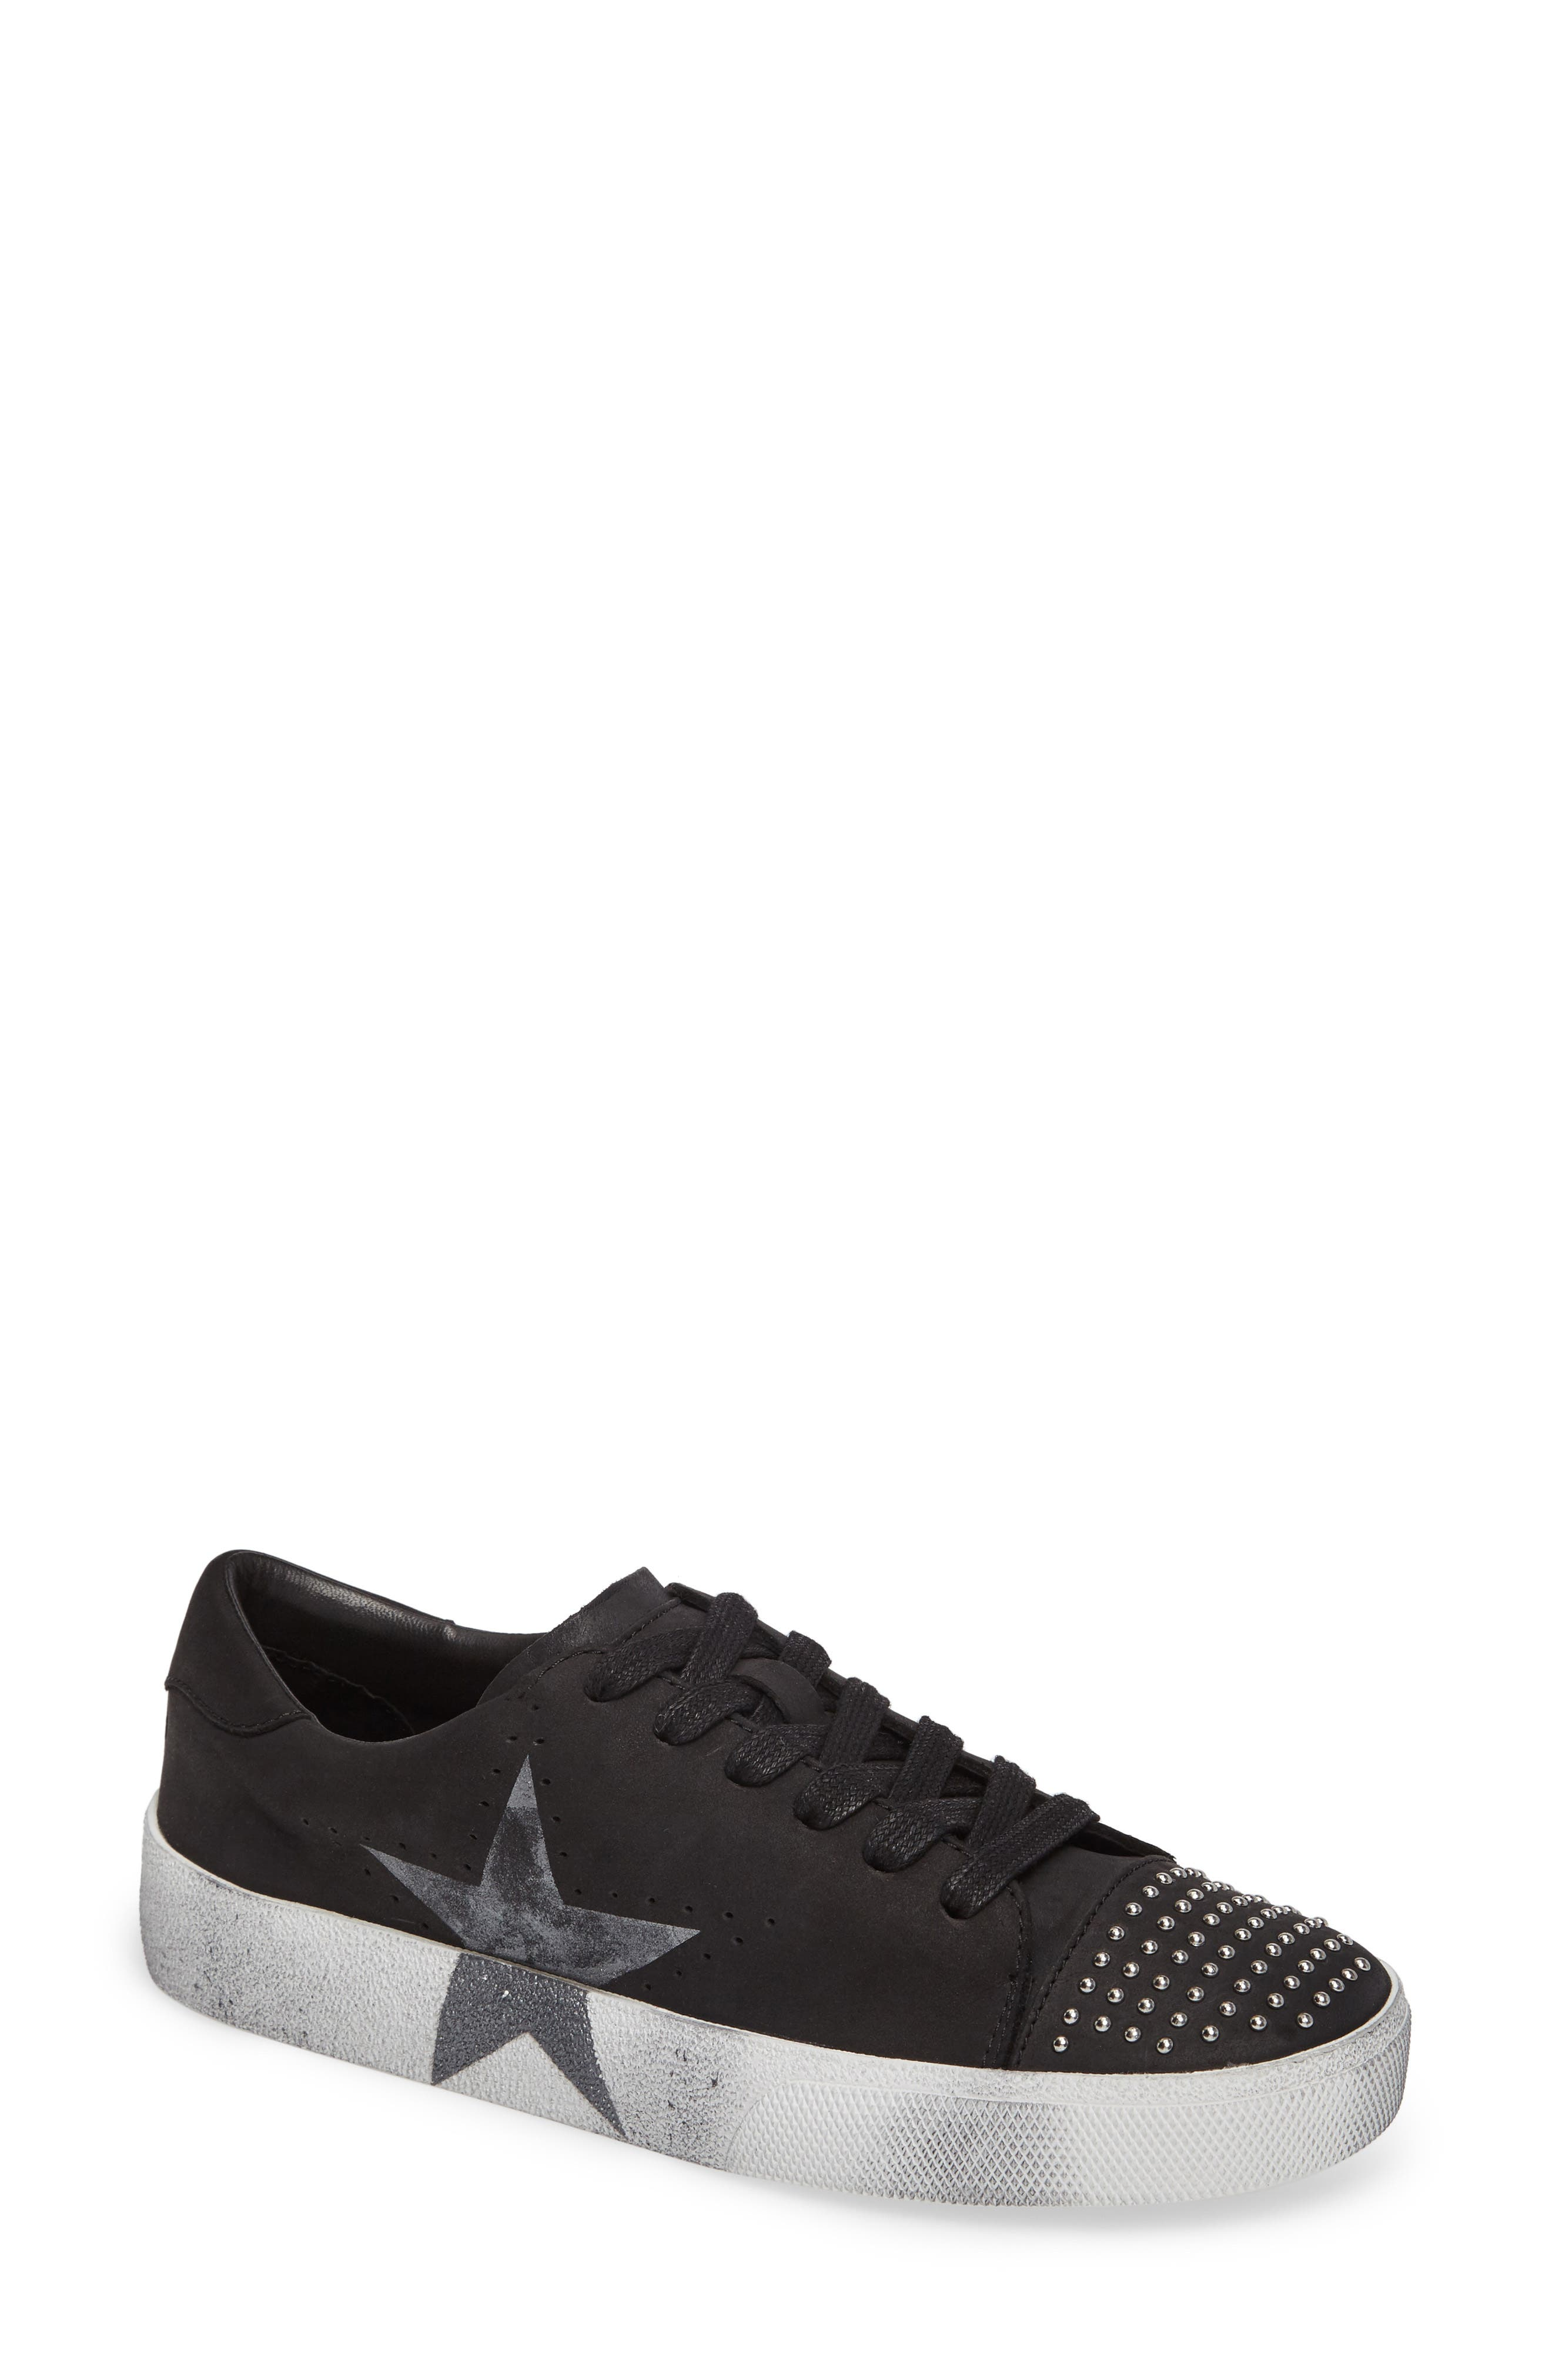 Catcall Studded Sneaker,                             Main thumbnail 1, color,                             002